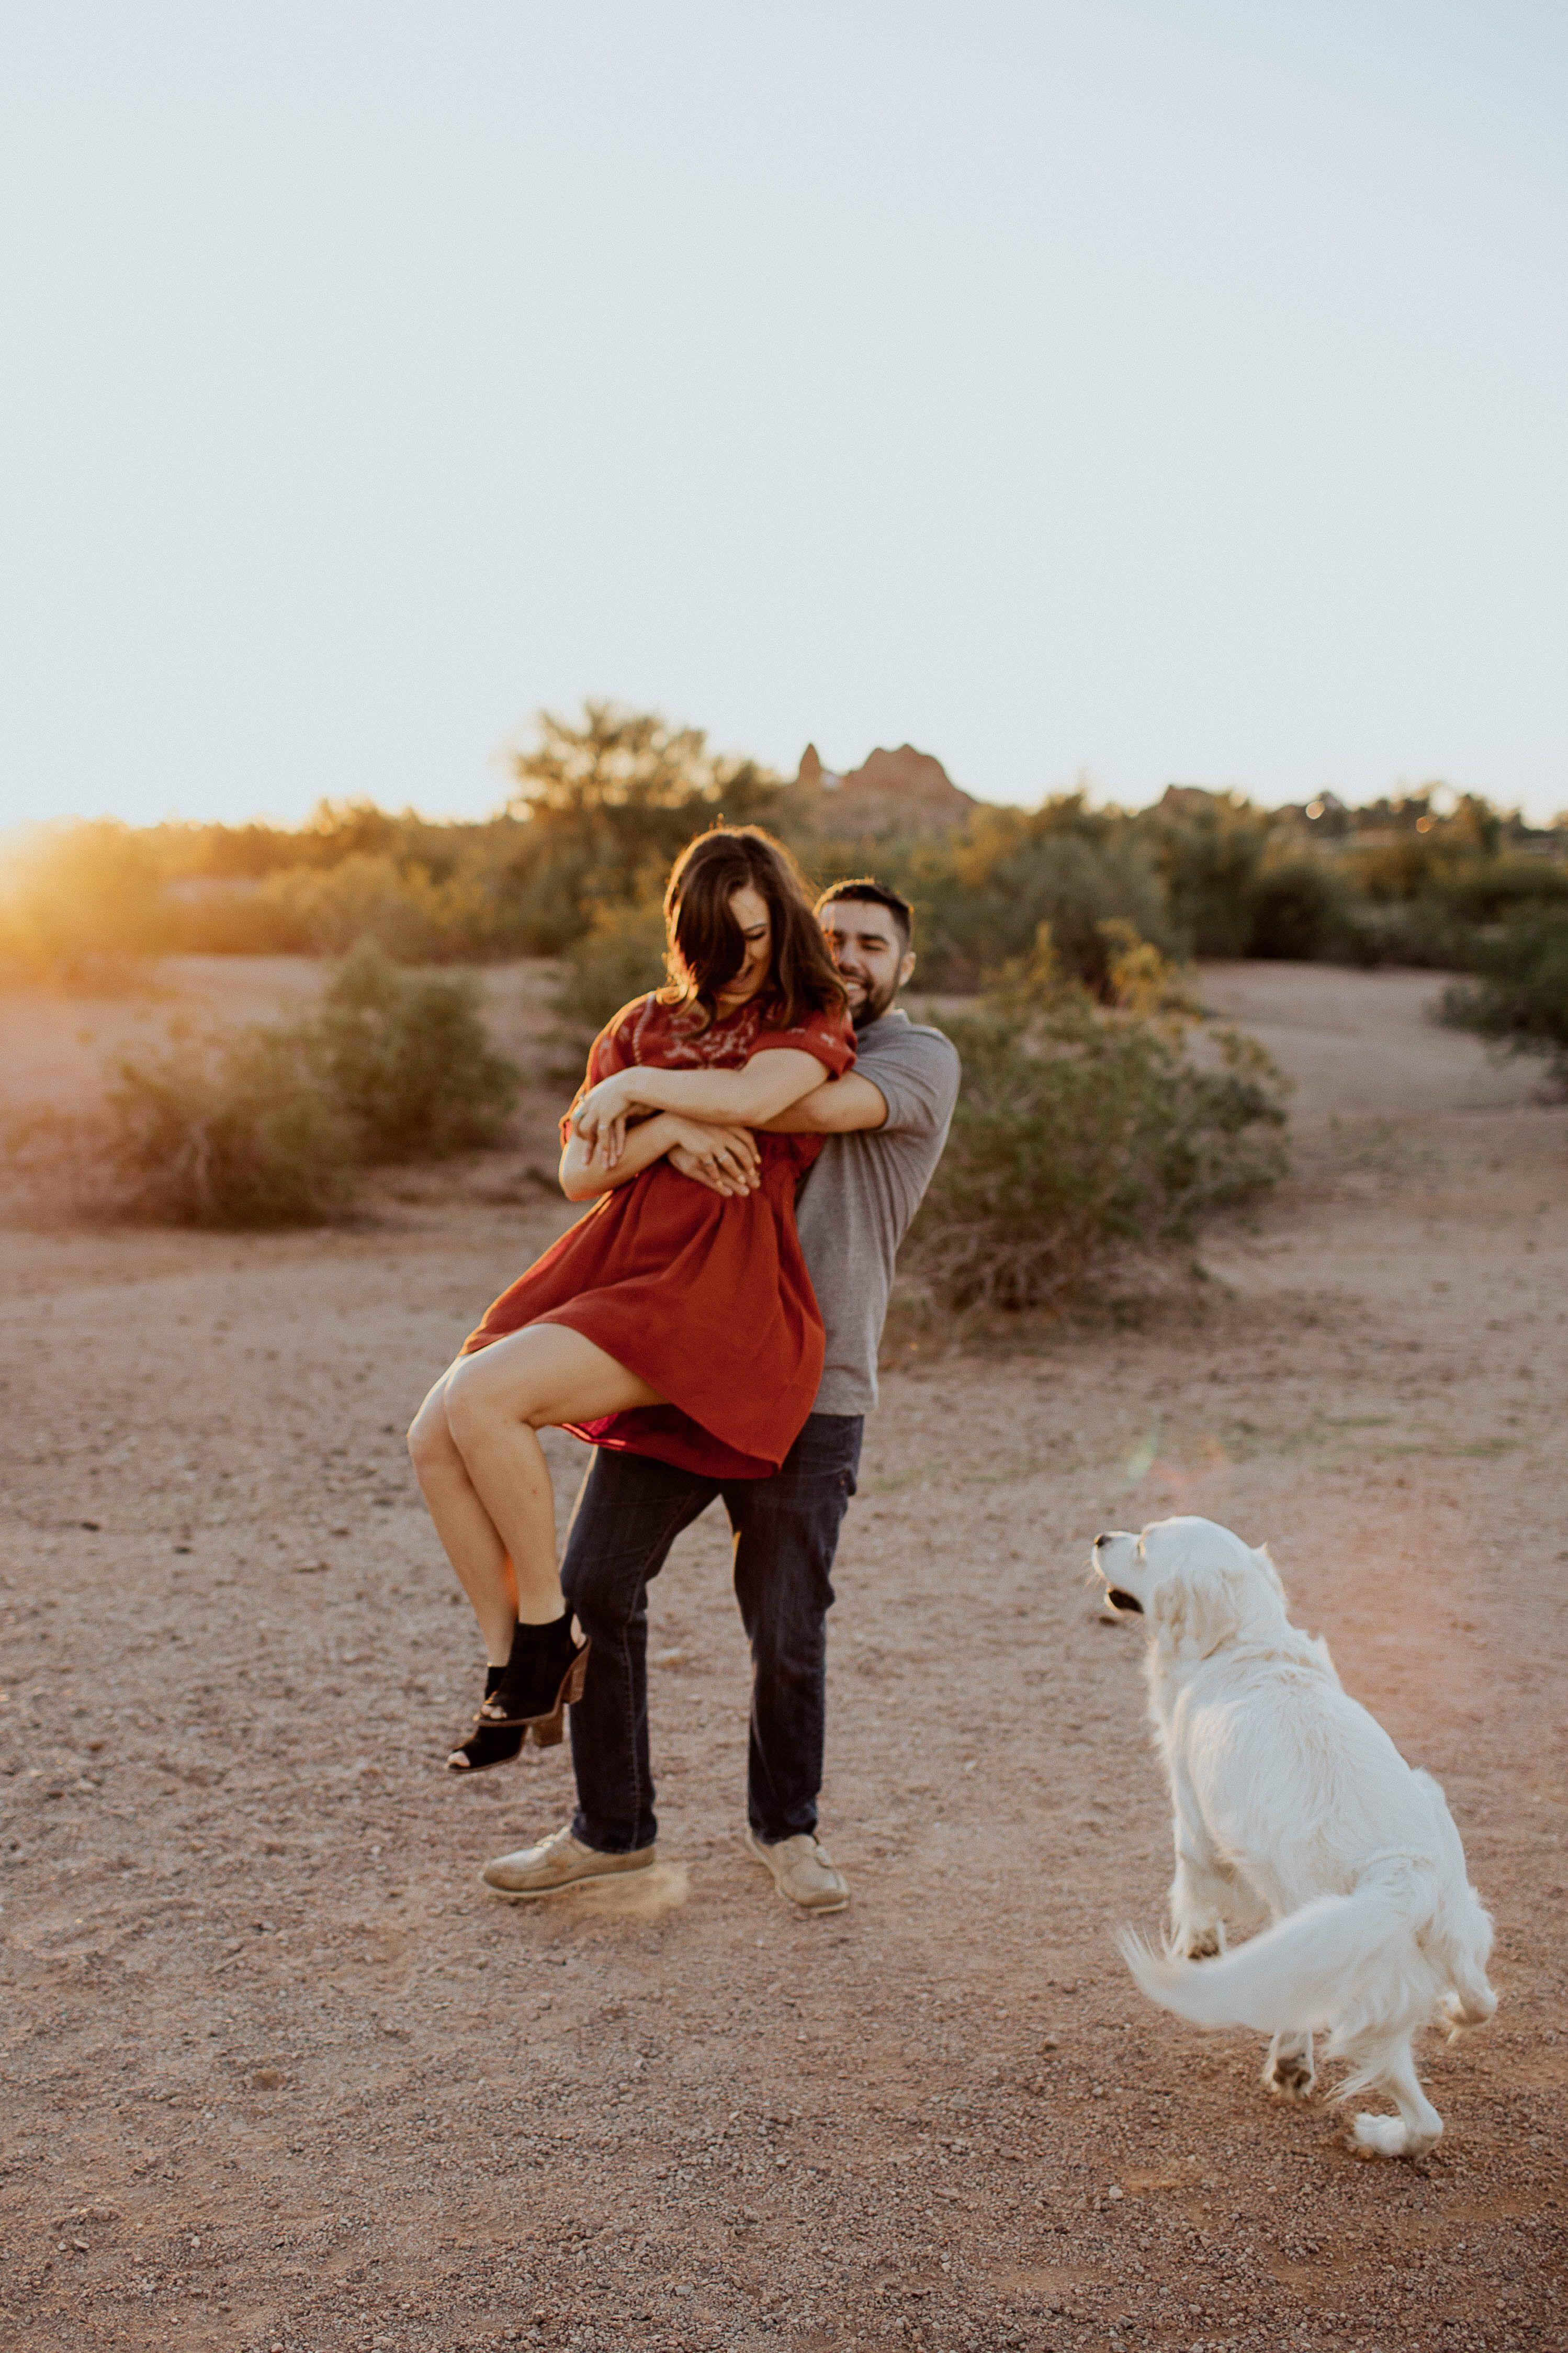 Lovers And Their Dog Dog Photoshoot Couple Photography Poses Couples Photoshoot